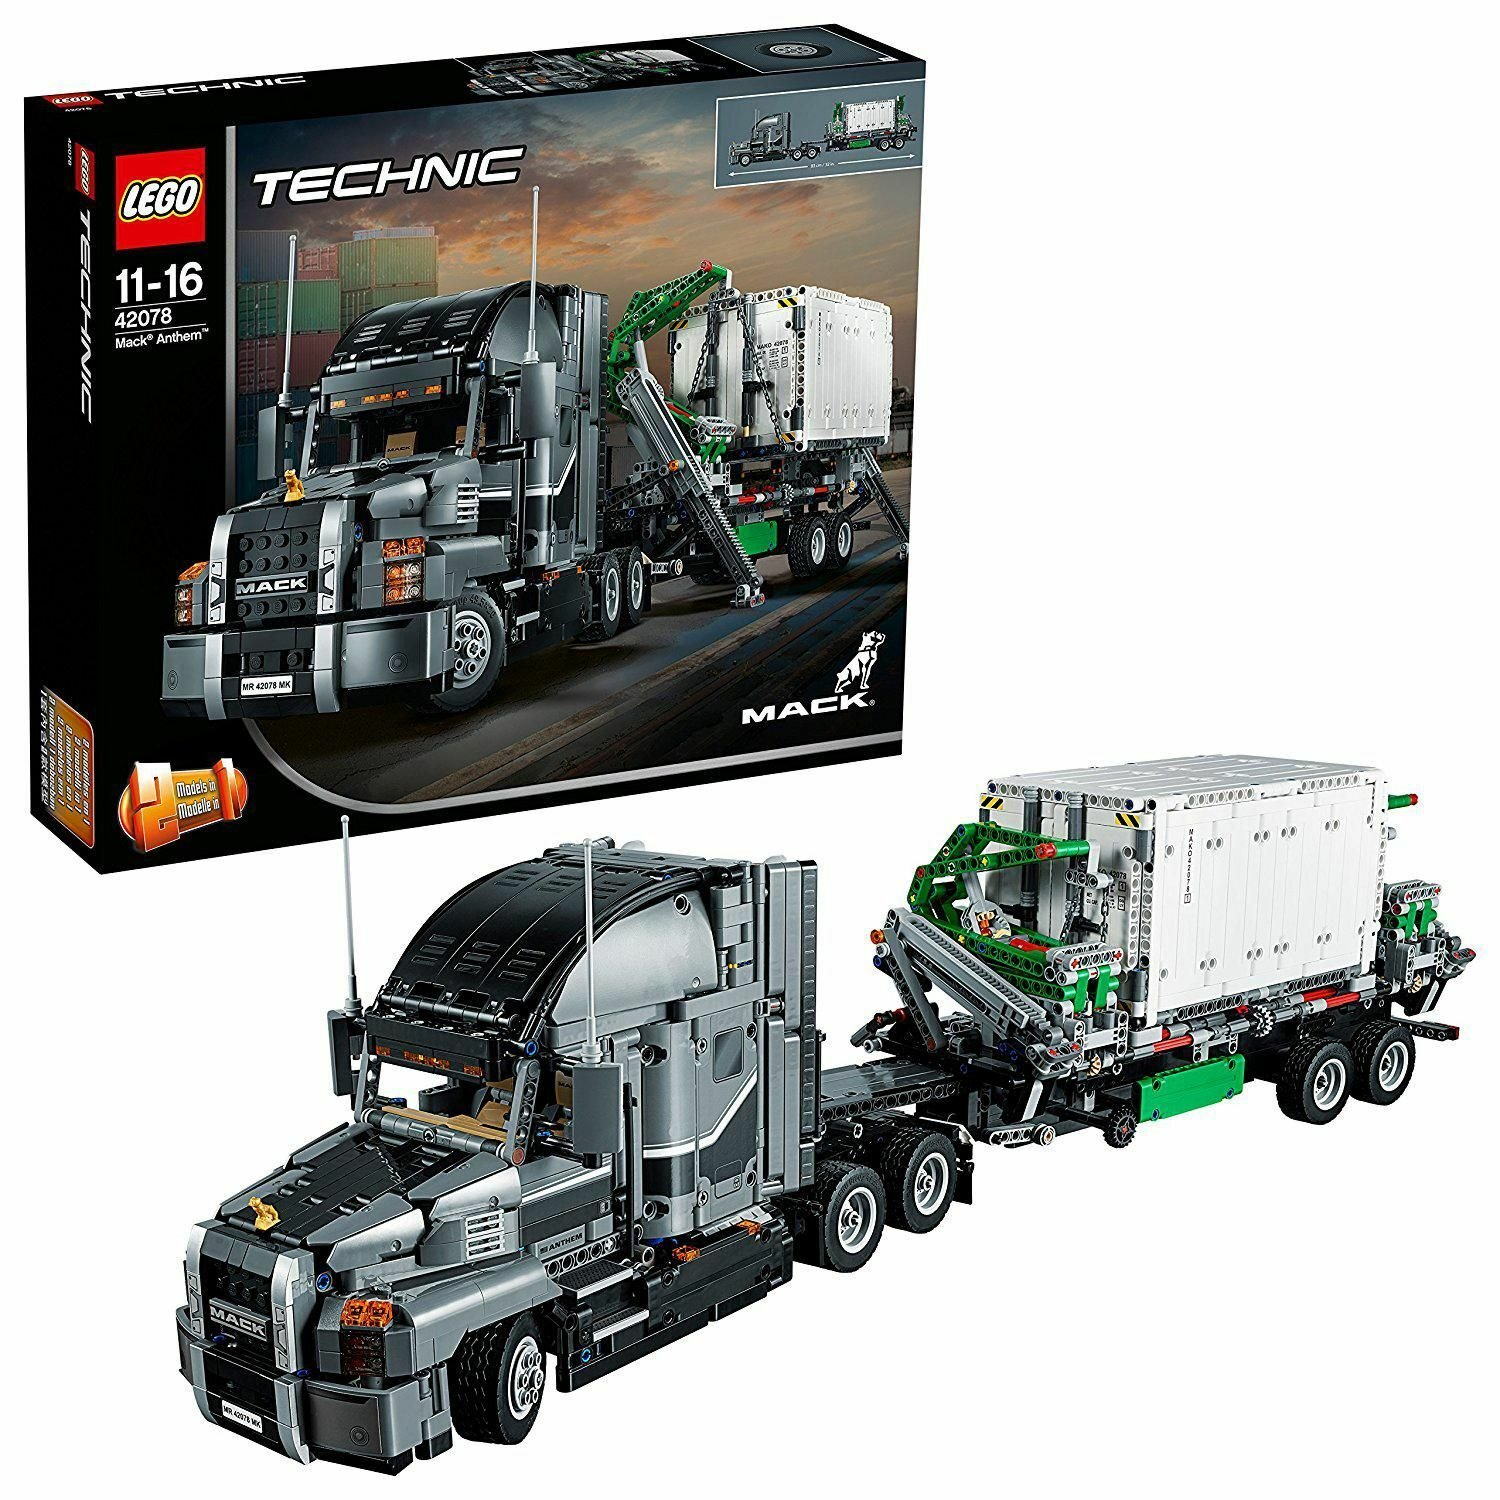 Image of LEGO Technic Mack Anthem Truck - 42078